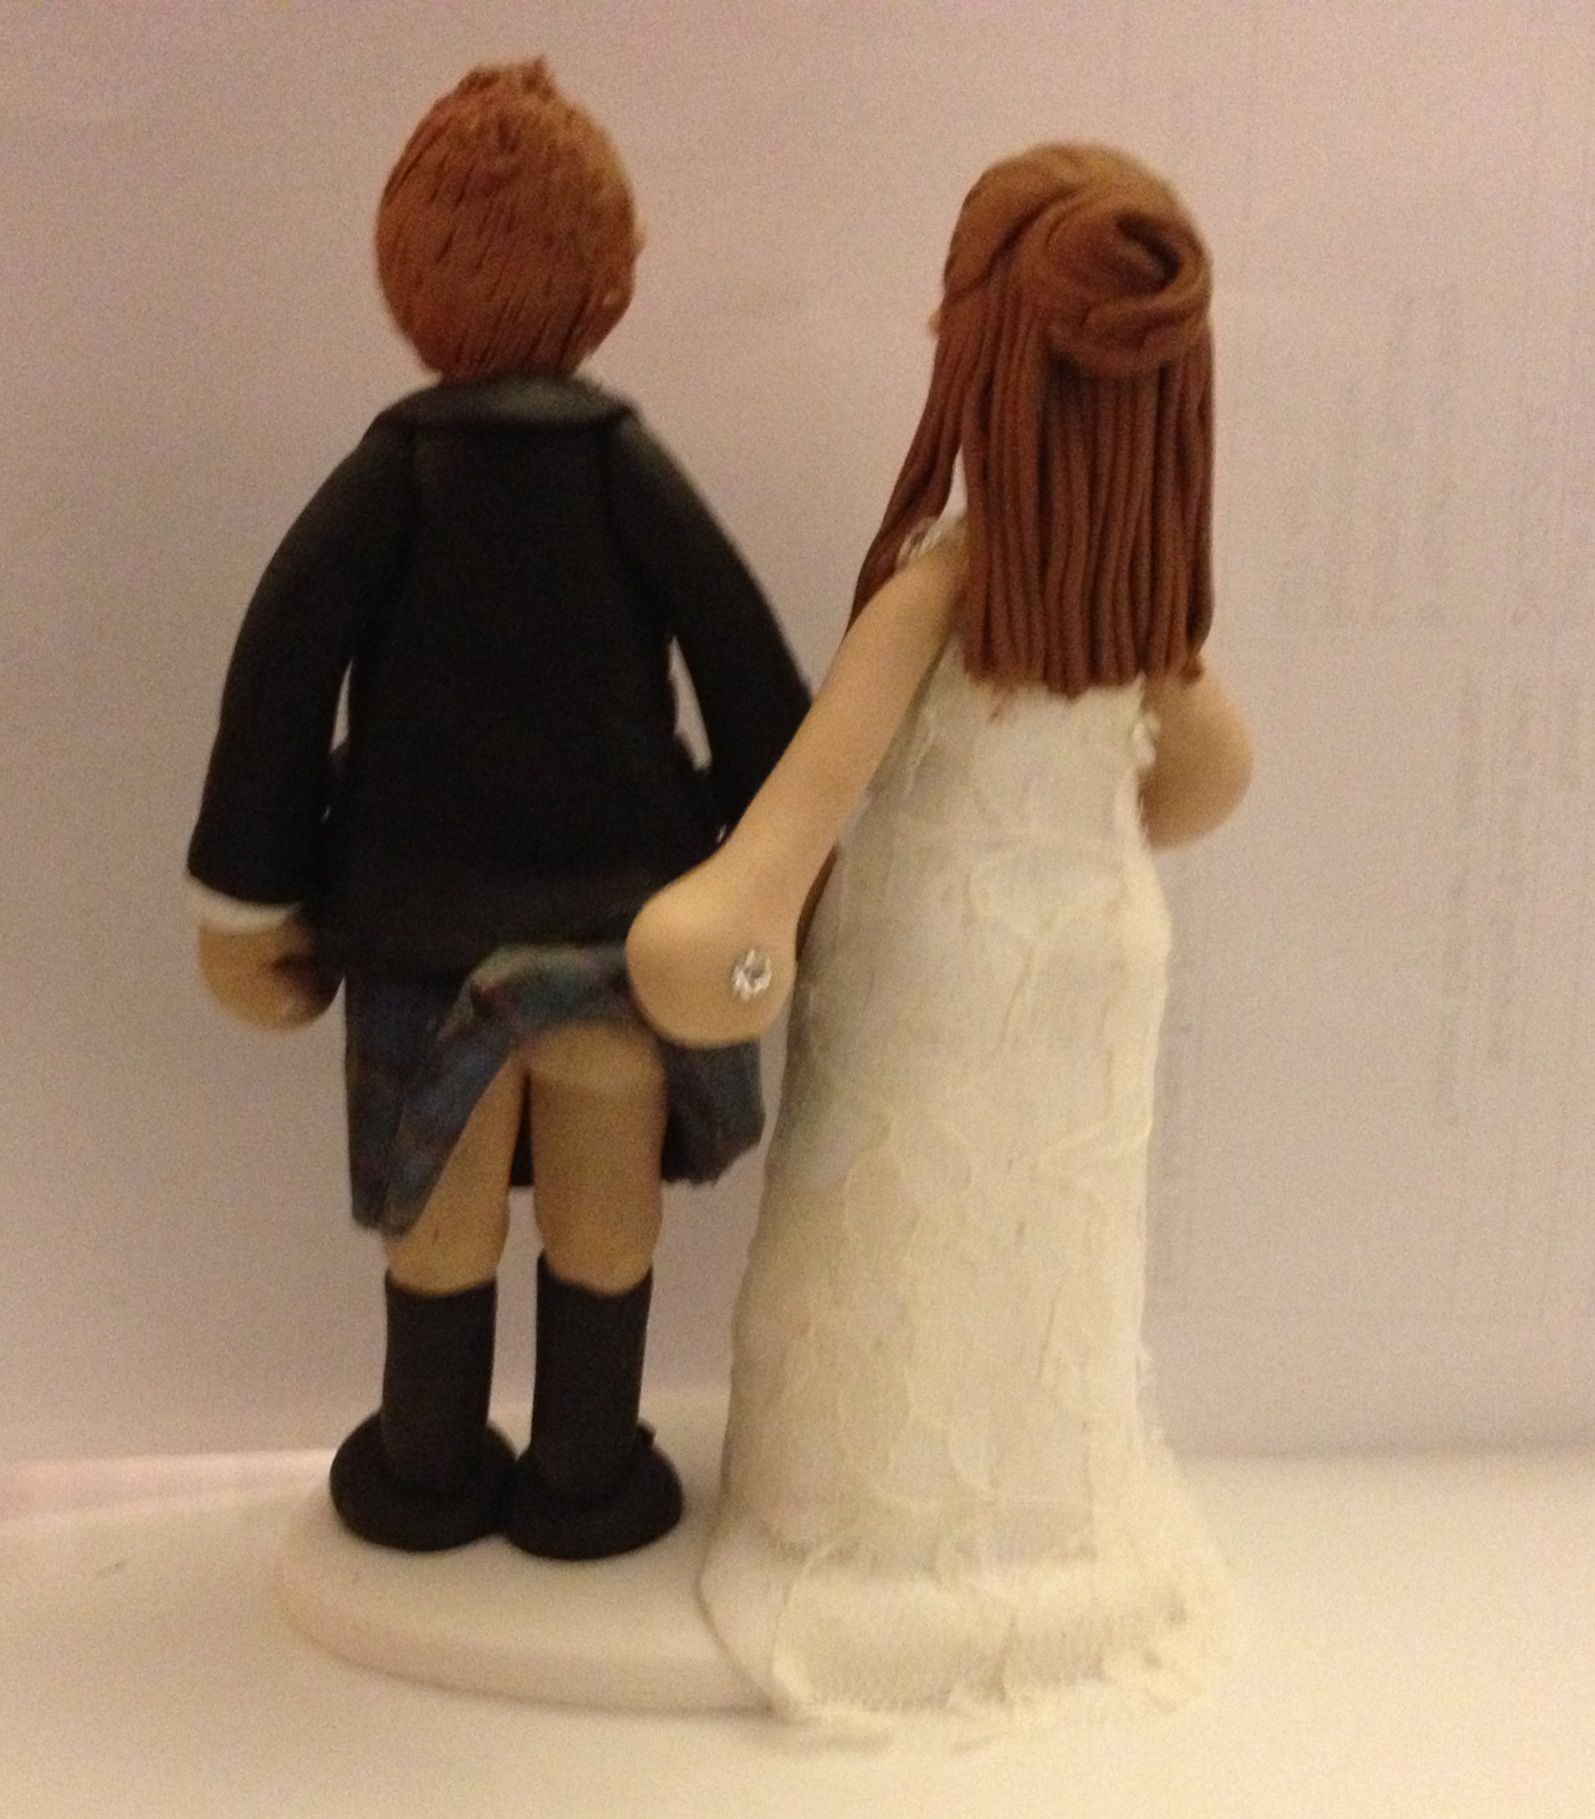 cheeky scottish wedding cake toppers a cheeky view of a scottish kilt wedding cake topper 12550